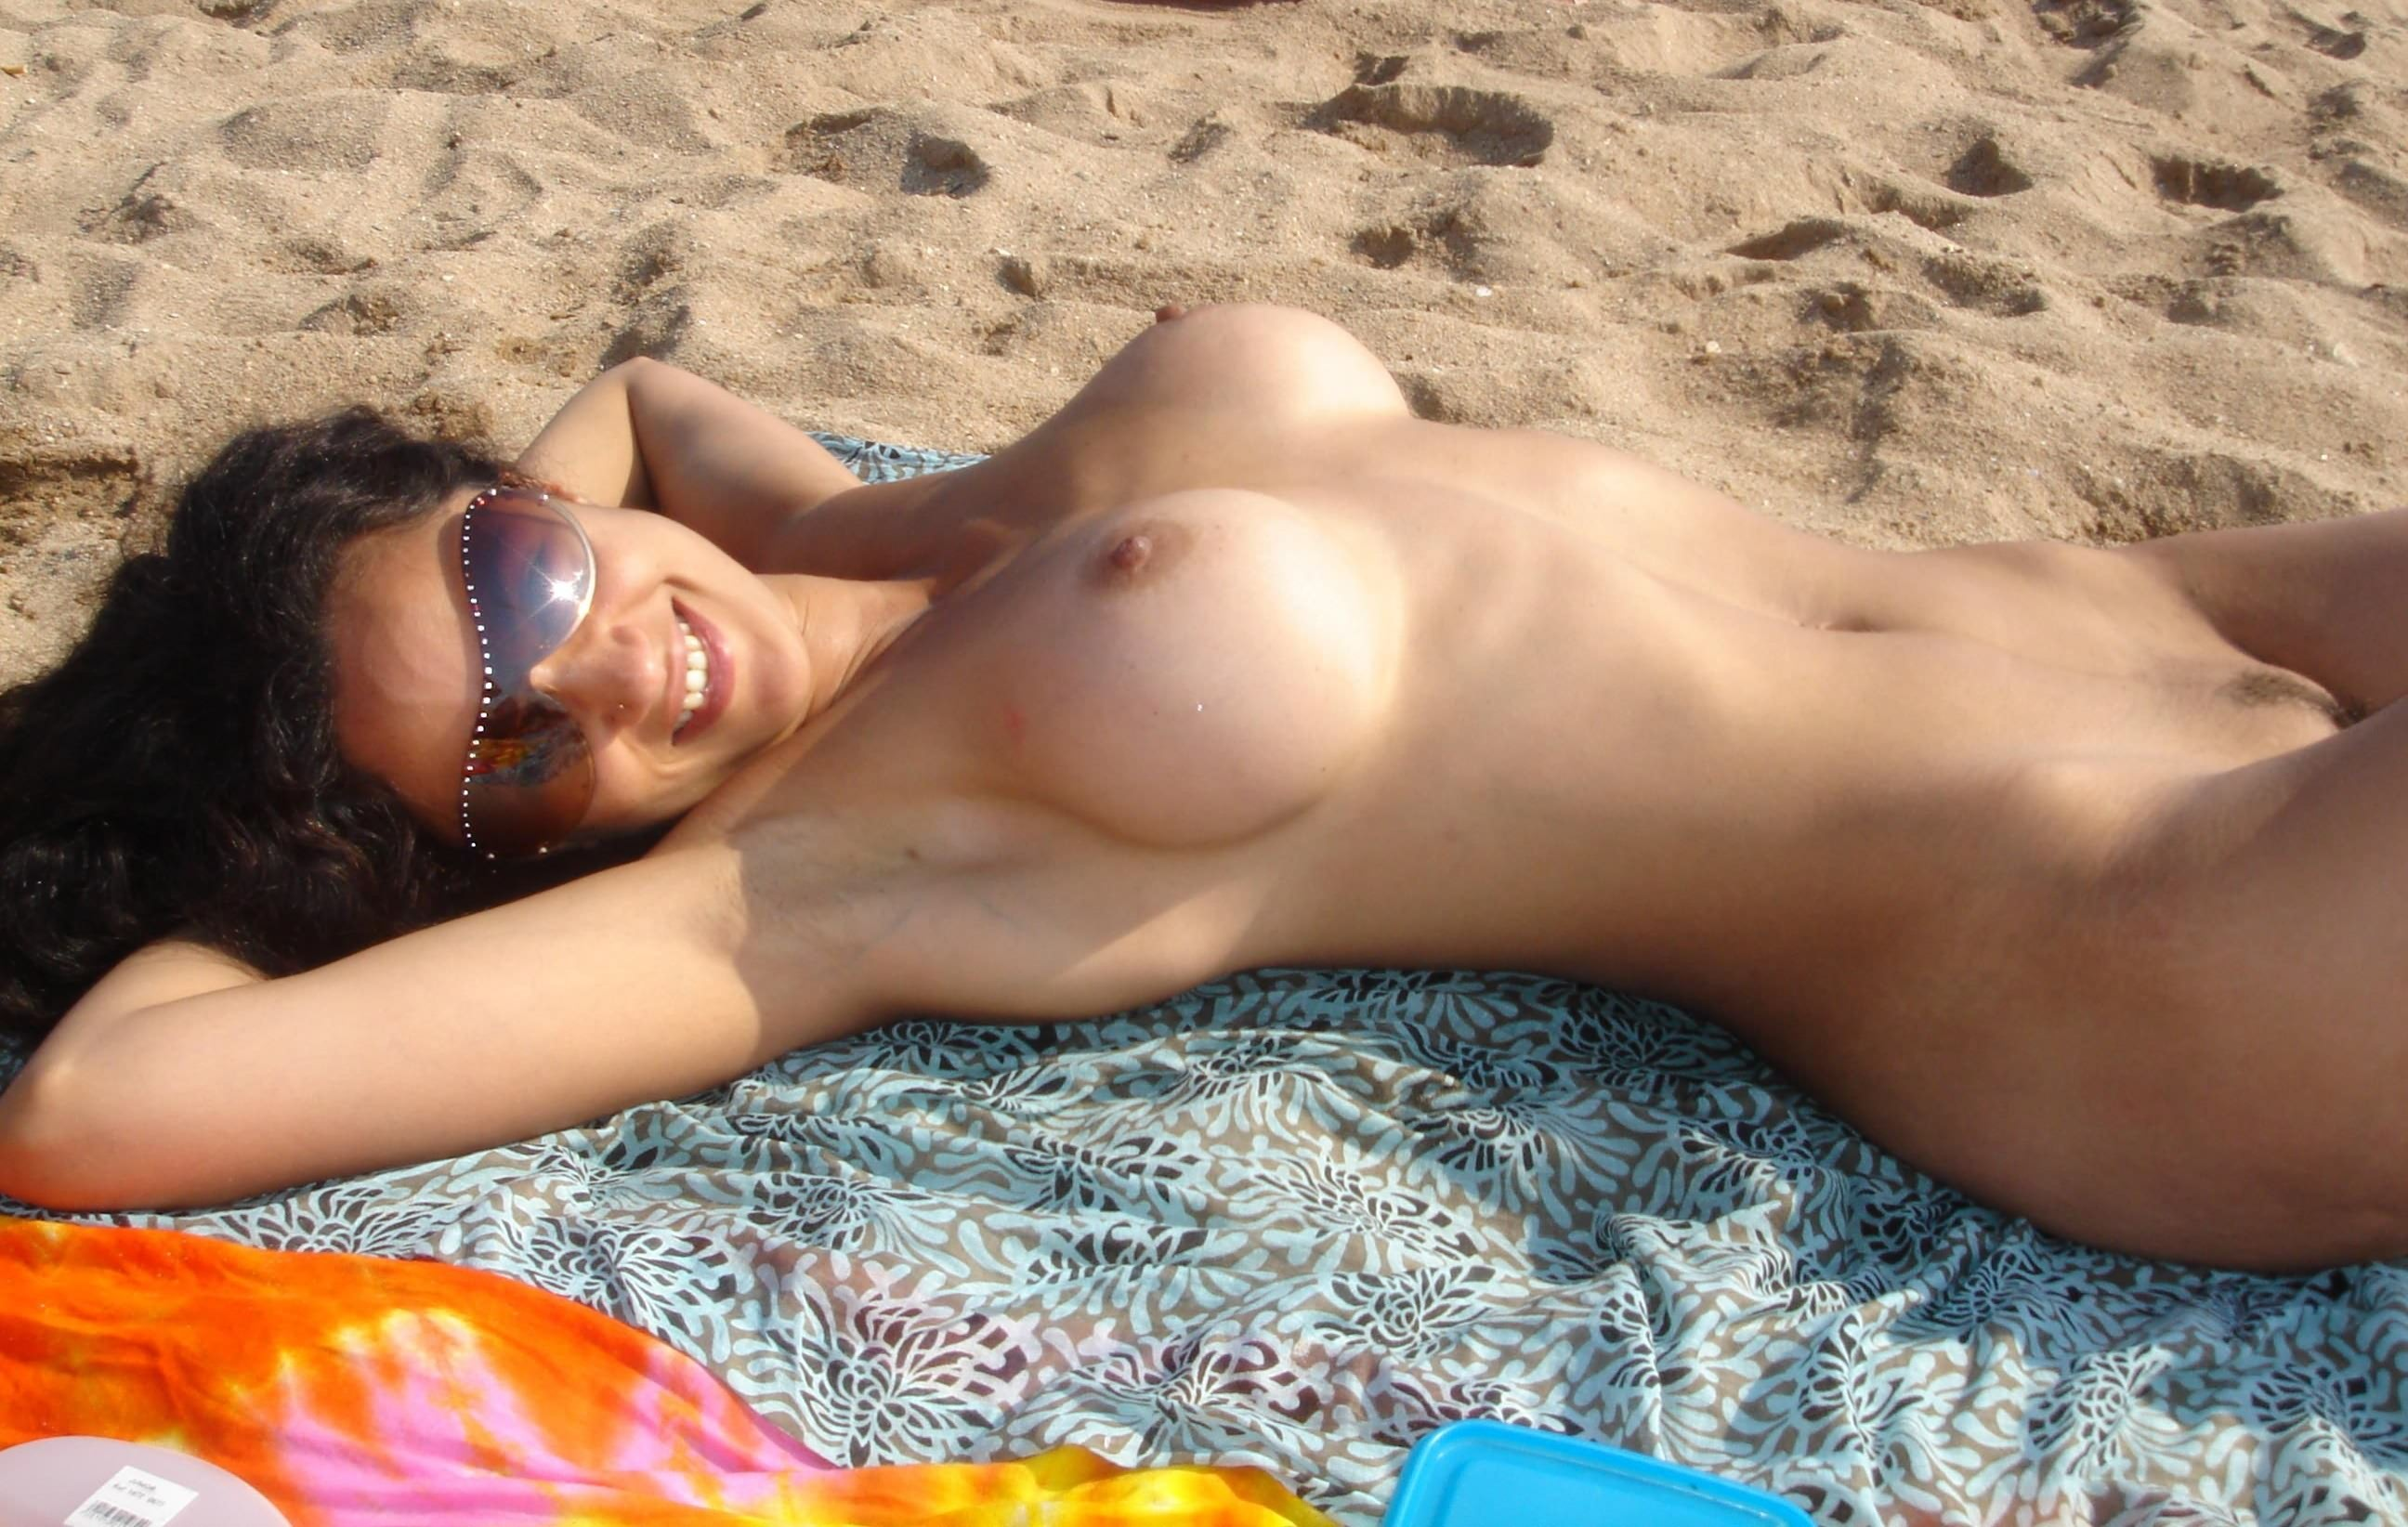 Sexy older woman lounging nude on the beach - Babes Gone Wild